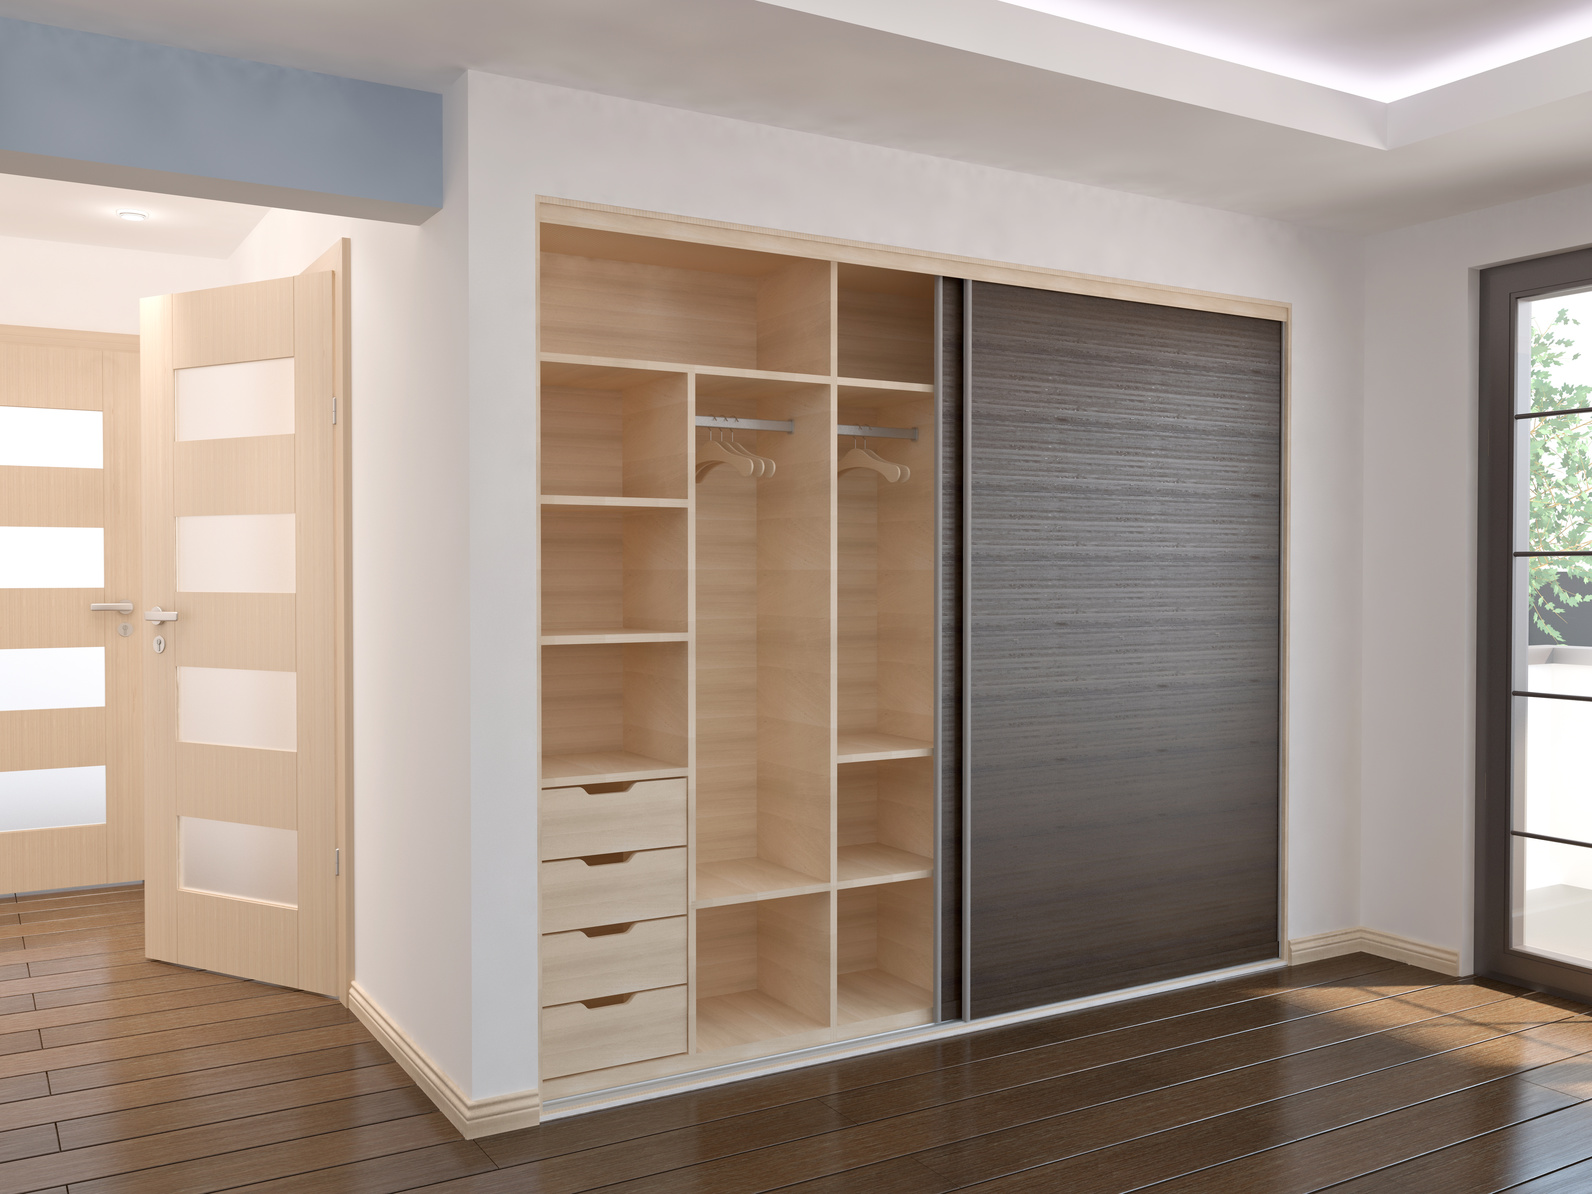 lightbox & Sliding Door Wardrobes | Fiximer Kitchens \u0026 Bedrooms Doncaster